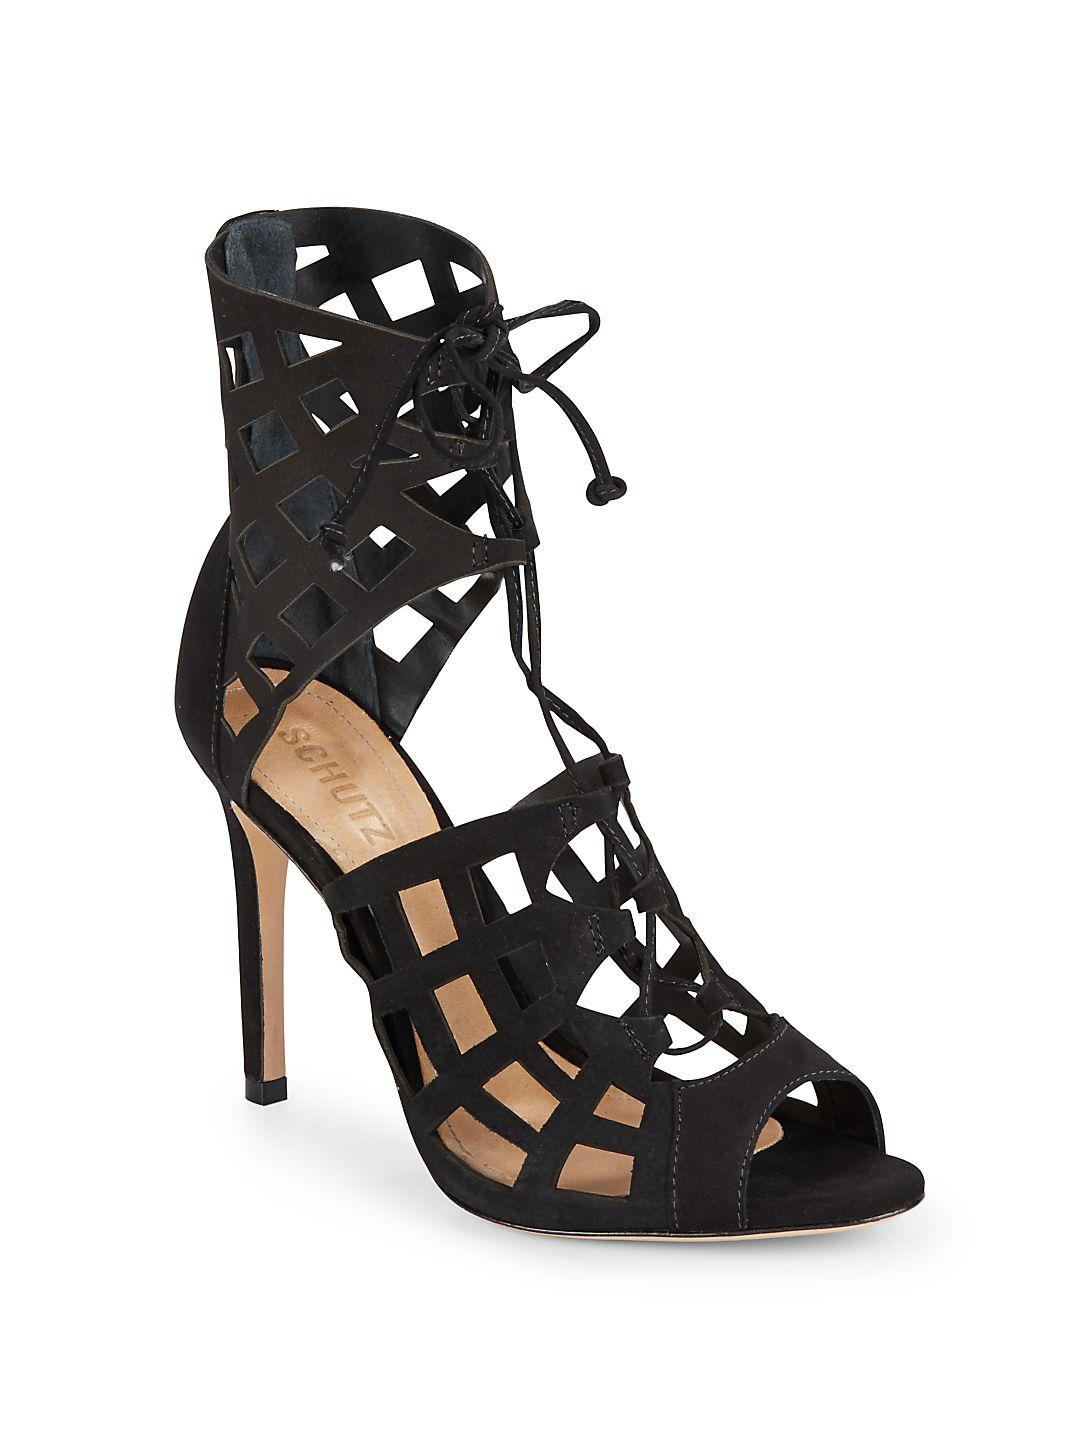 Blake, Womens Pumps Schutz